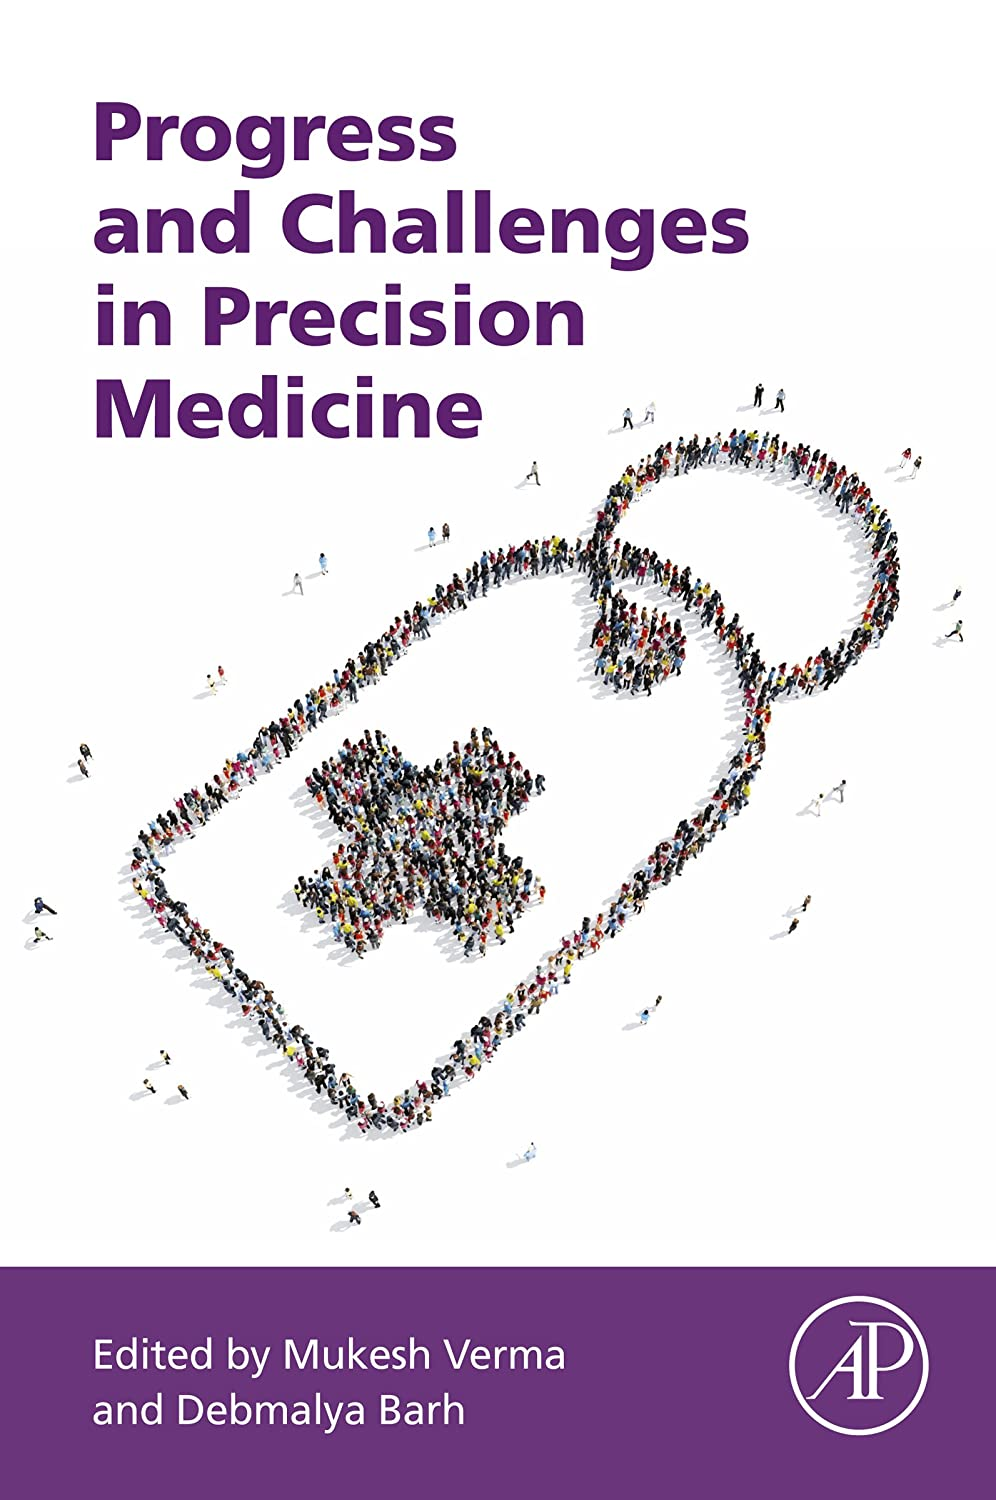 Progress and Challenges in Precision Medicine (English Edition)